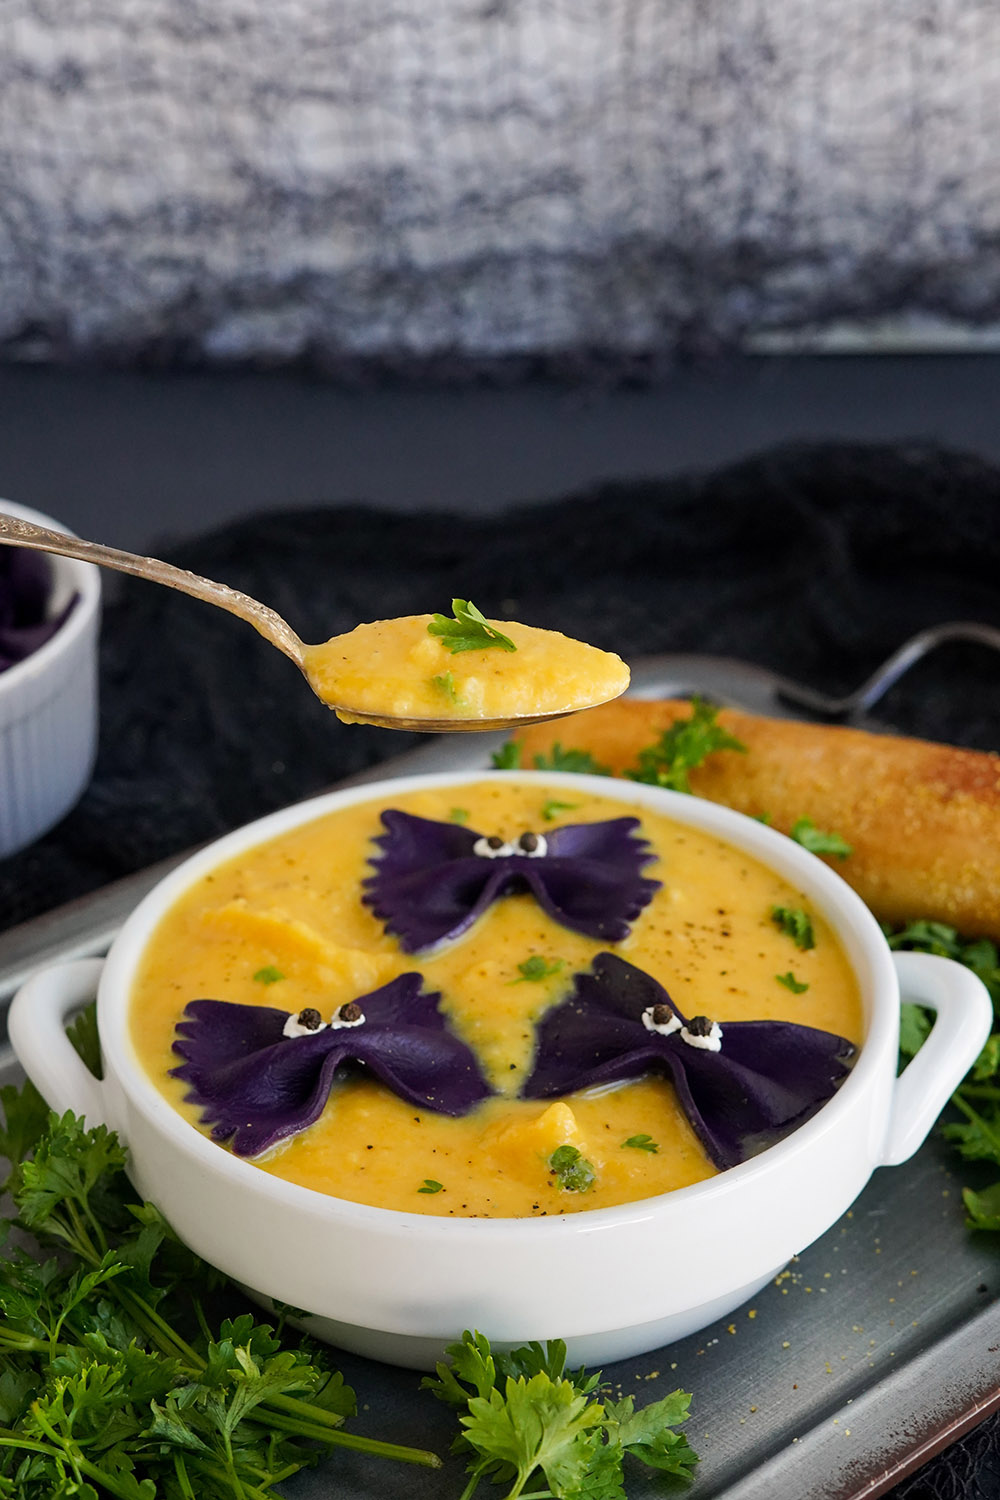 Raised spoon with butternut squash soup with bowl in the background.